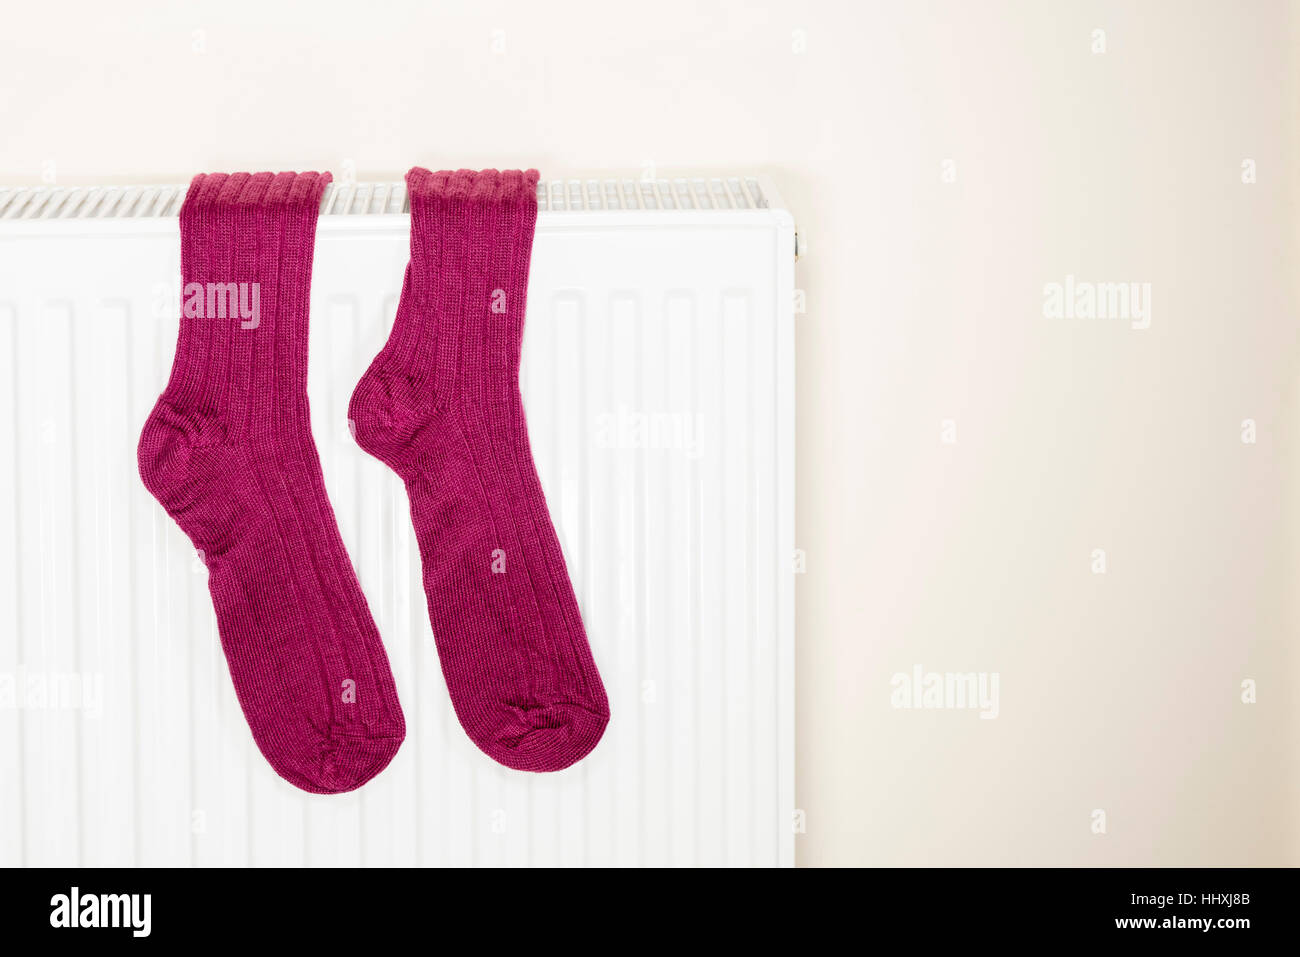 A pair of hiking socks hanging over a radiator. - Stock Image